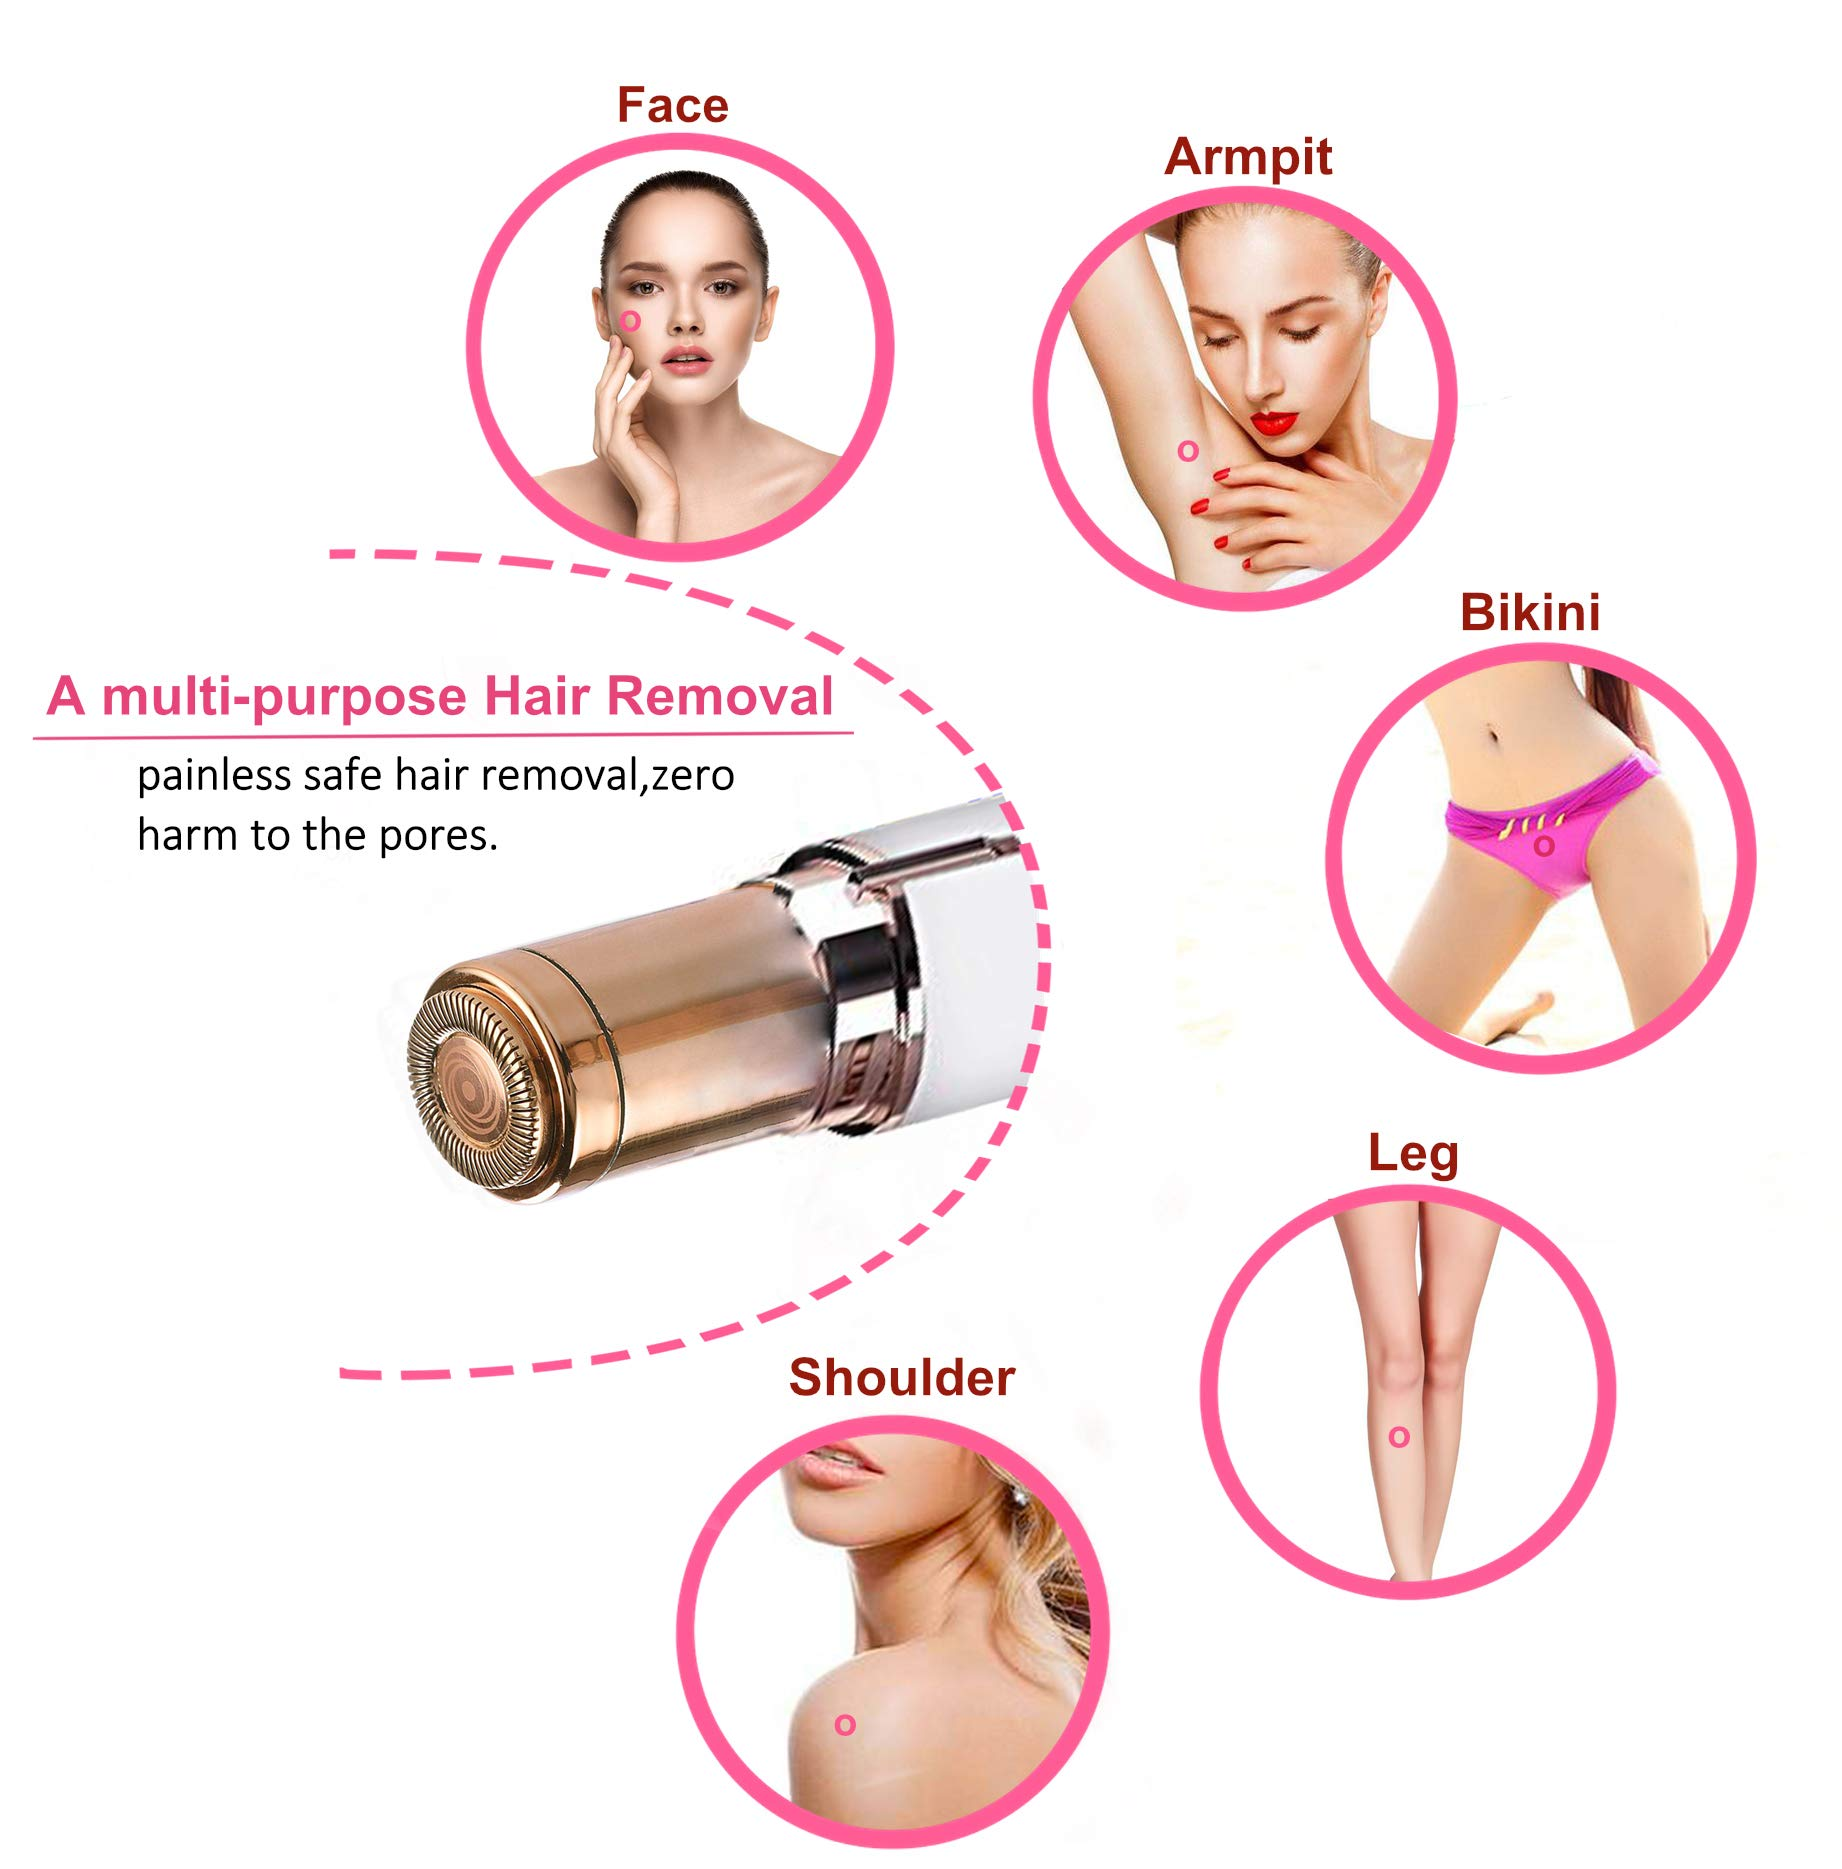 Women's Painless Hair Facial Remover, Remove Hairs on the Upper Lip, Chin, Cheeks, Sideburns, Mini Portable Travel Size with LED Light By Verfanny,white by Verfanny (Image #6)